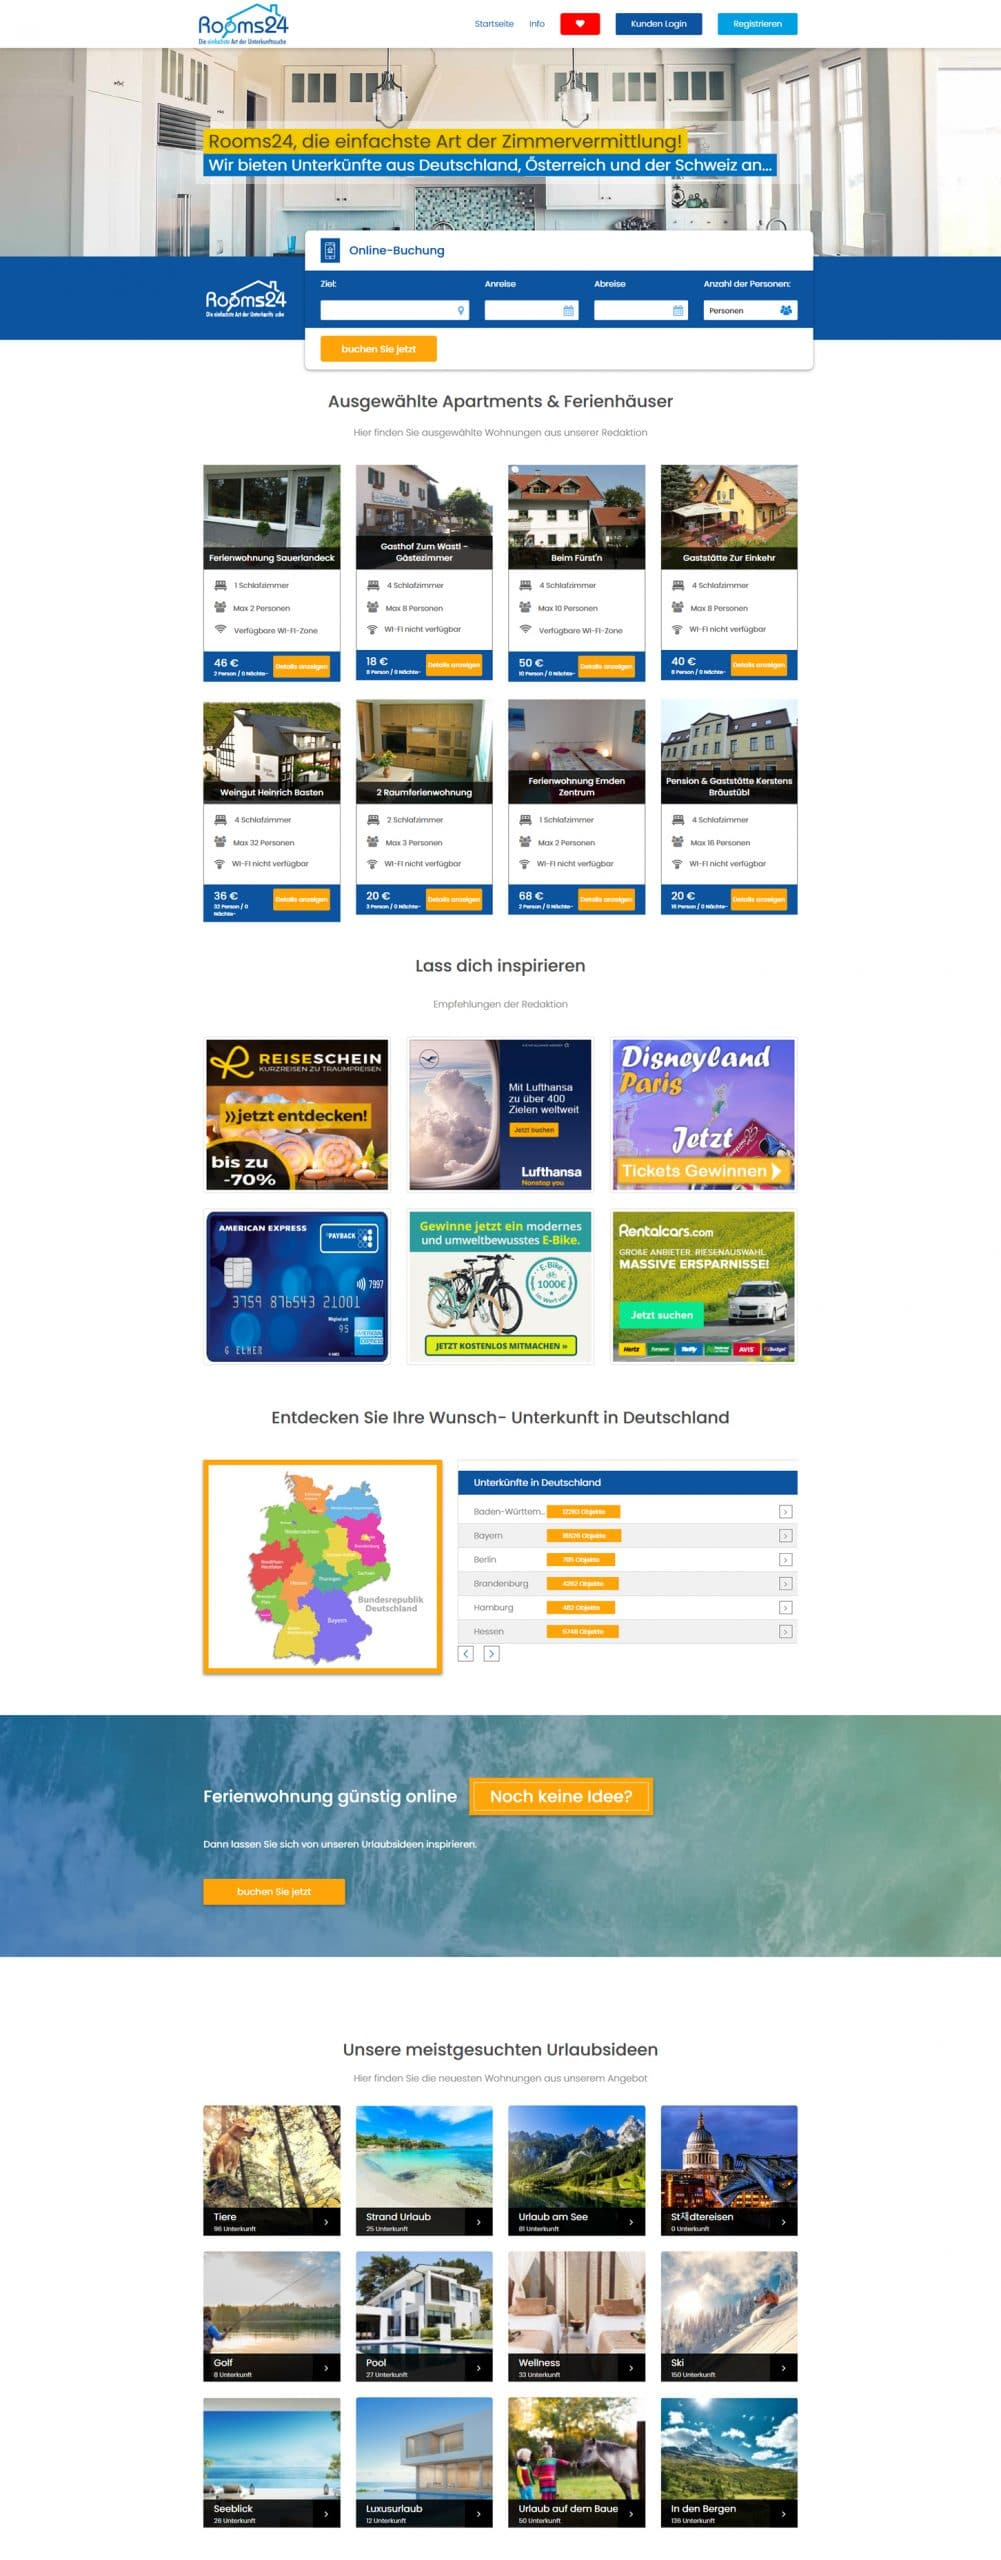 hotel-booking-website-development-company-2-scaled